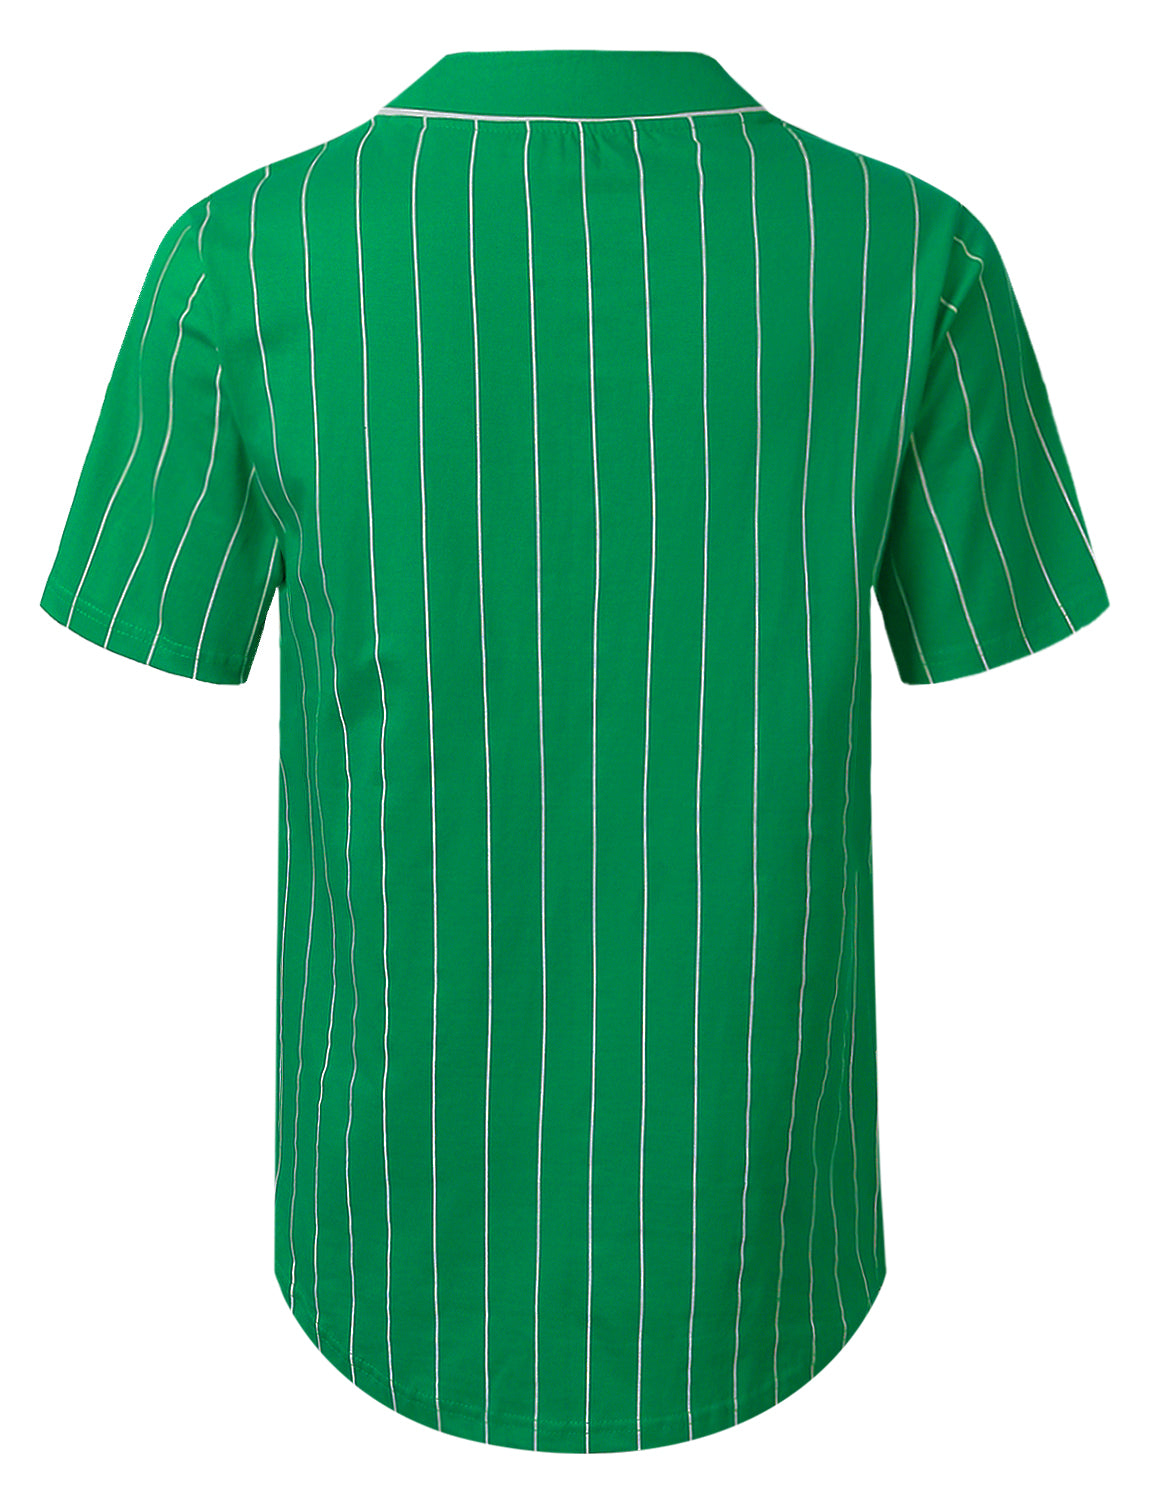 GREEN Striped Baseball Jersey Shirt - URBANCREWS